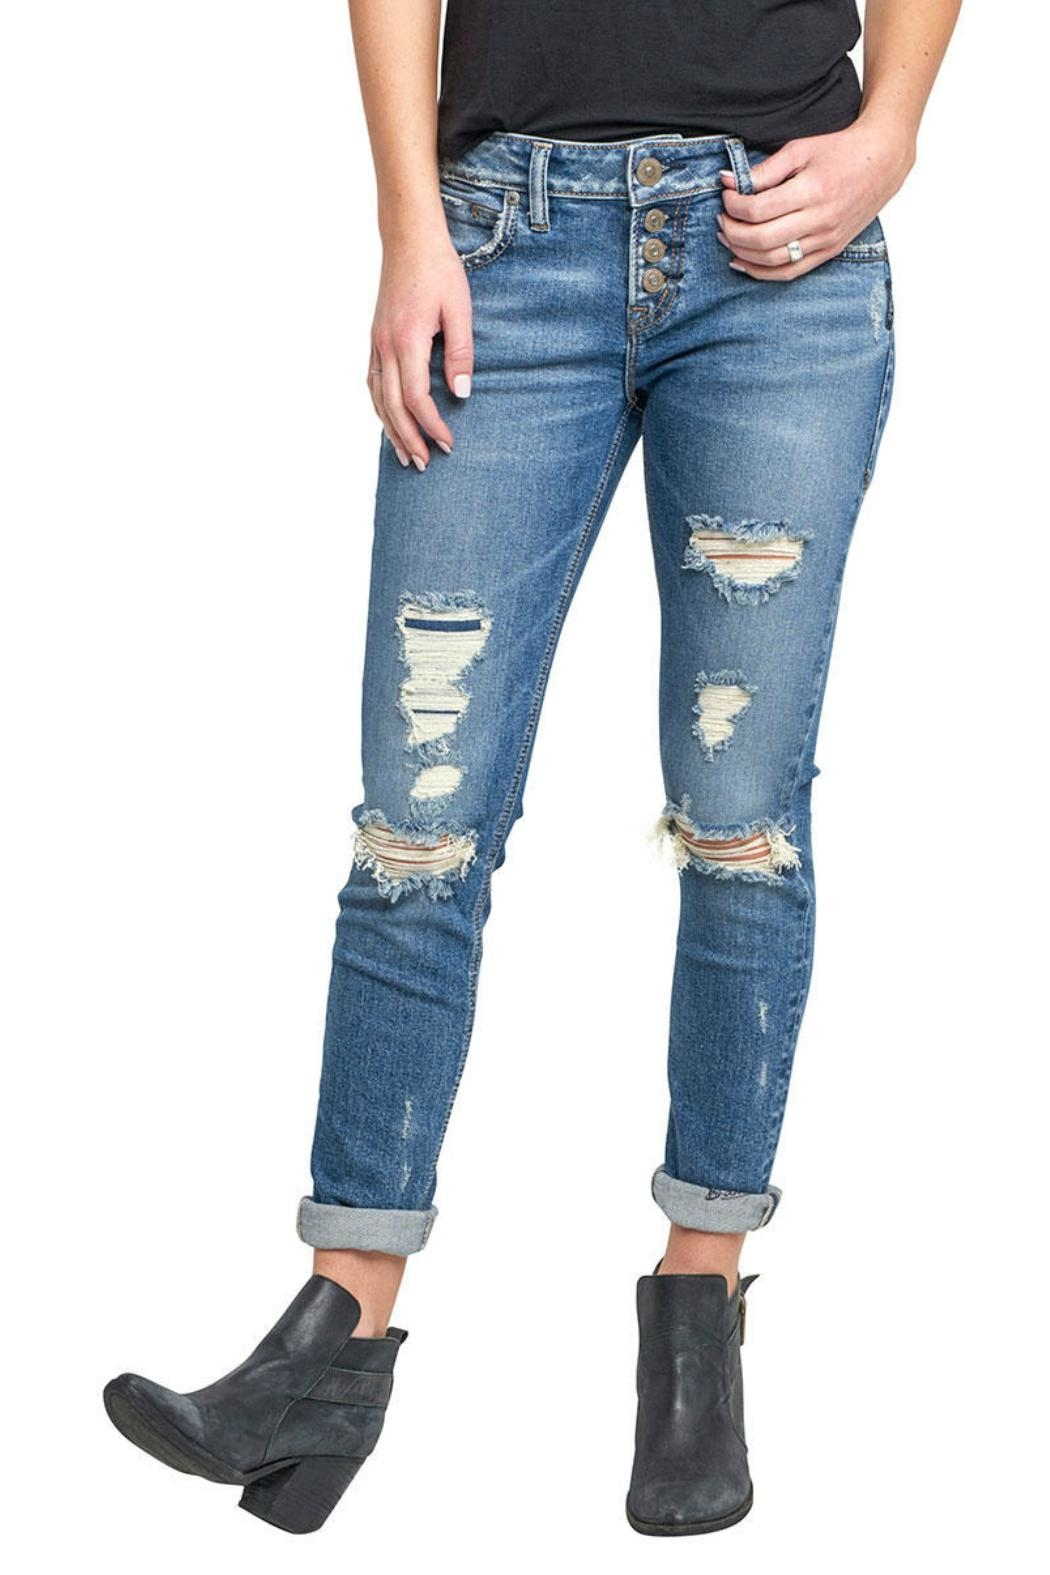 Silver Jeans Co. Kenni Girlfriend Jeans - Main Image